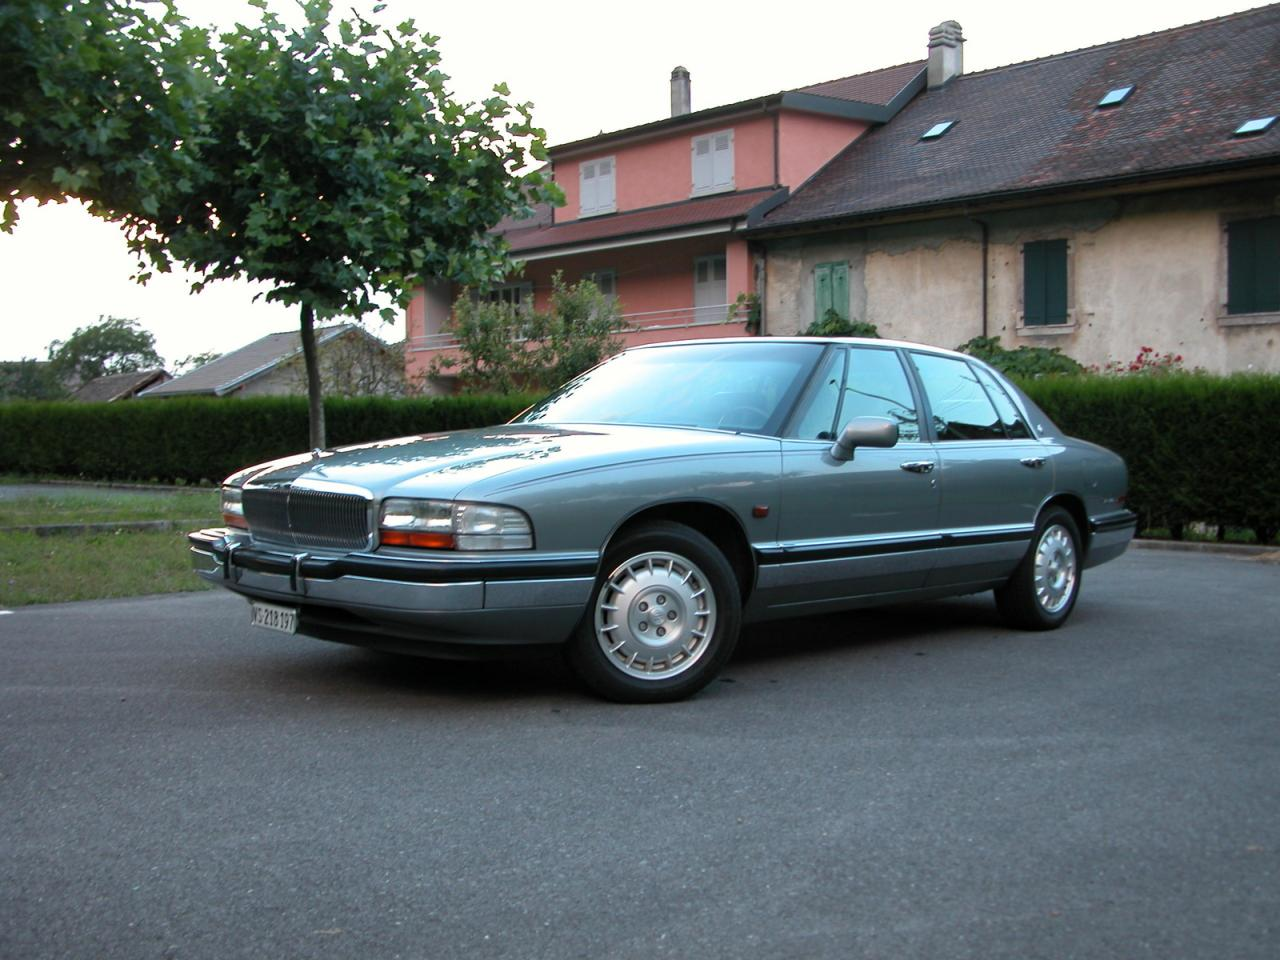 1992 buick park avenue information and photos zombiedrive. Black Bedroom Furniture Sets. Home Design Ideas